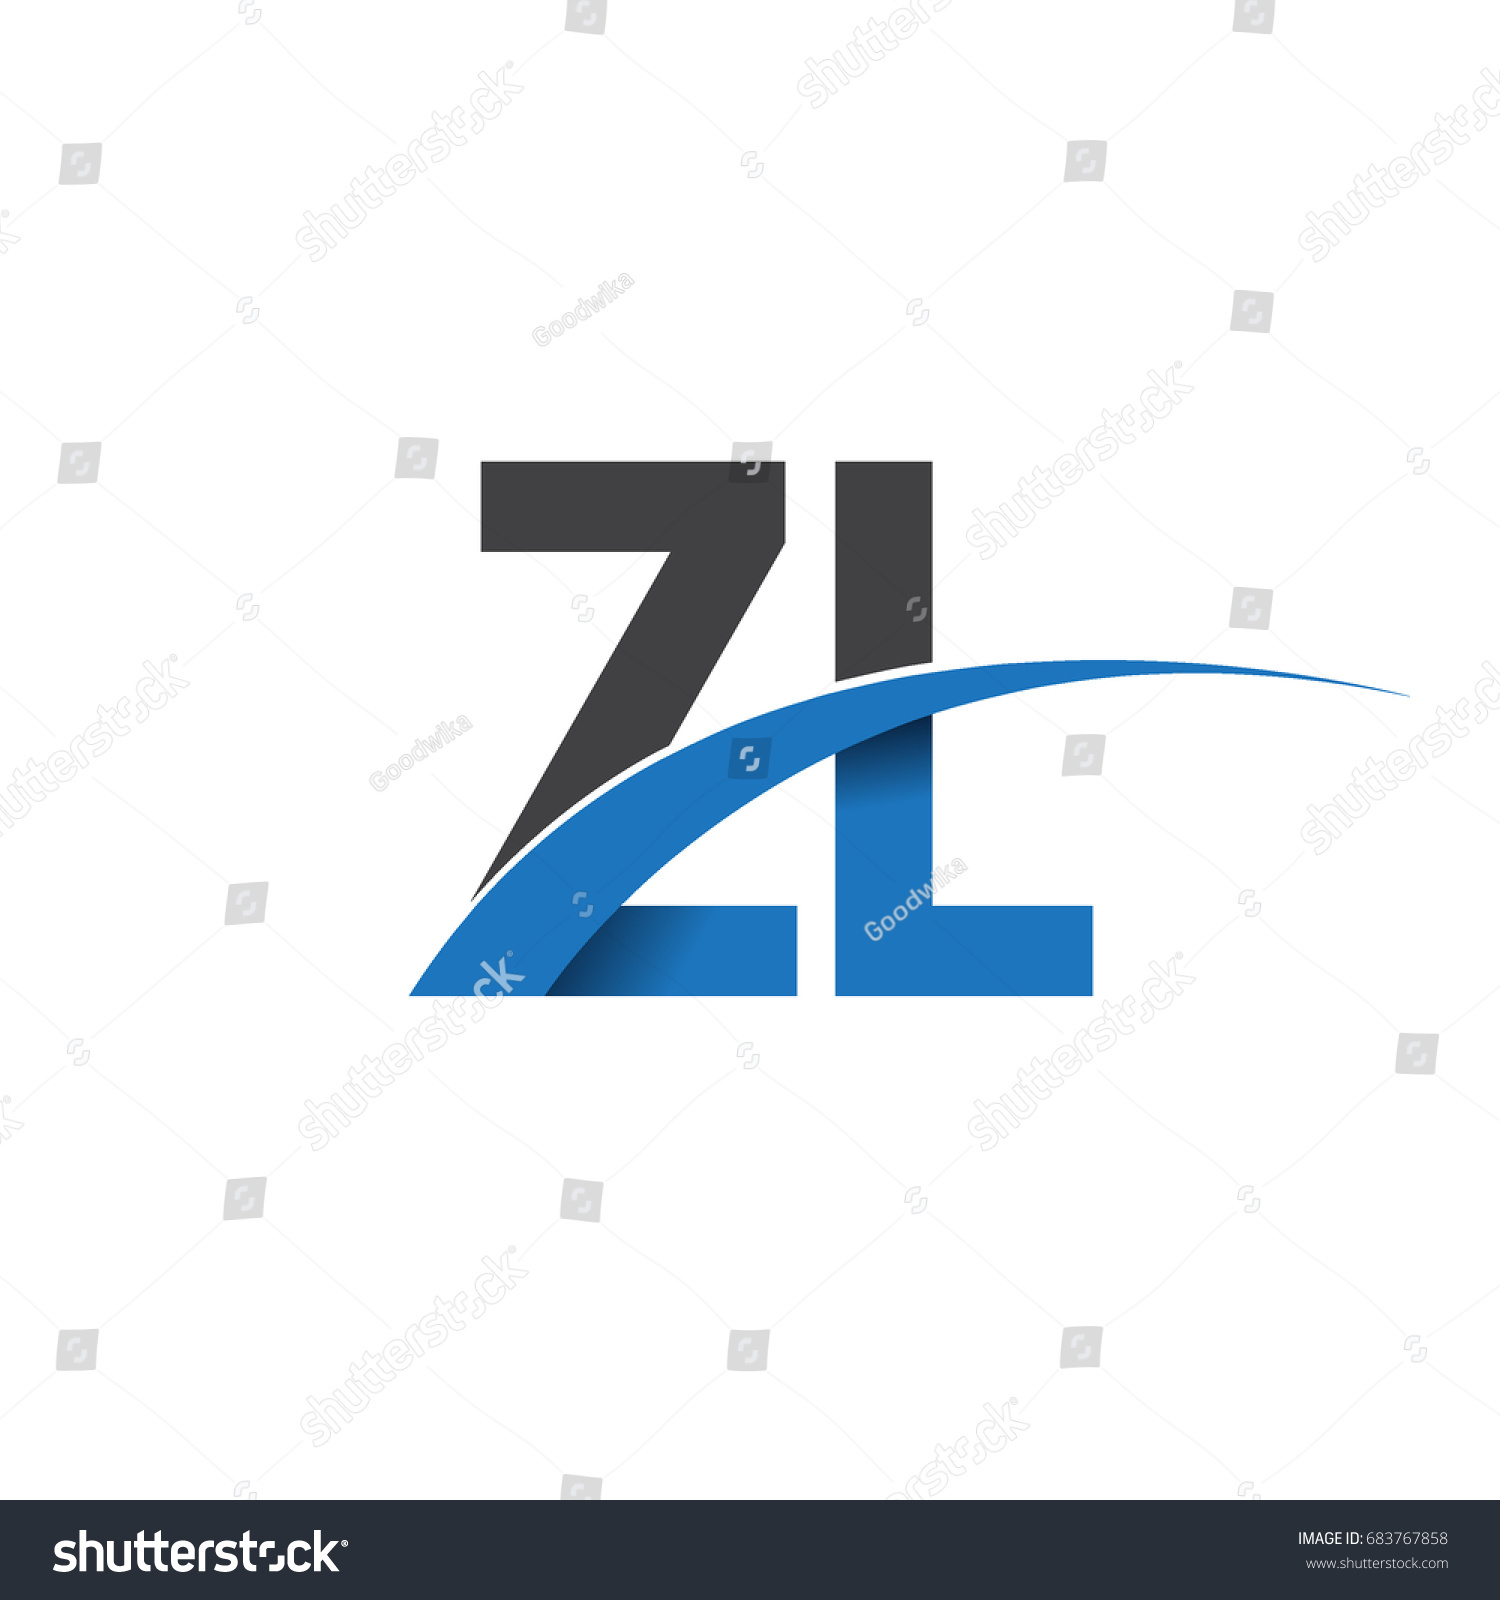 Initial letter zl logotype company name stock vector 683767858 initial letter zl logotype company name colored blue and grey swoosh design vector logo for buycottarizona